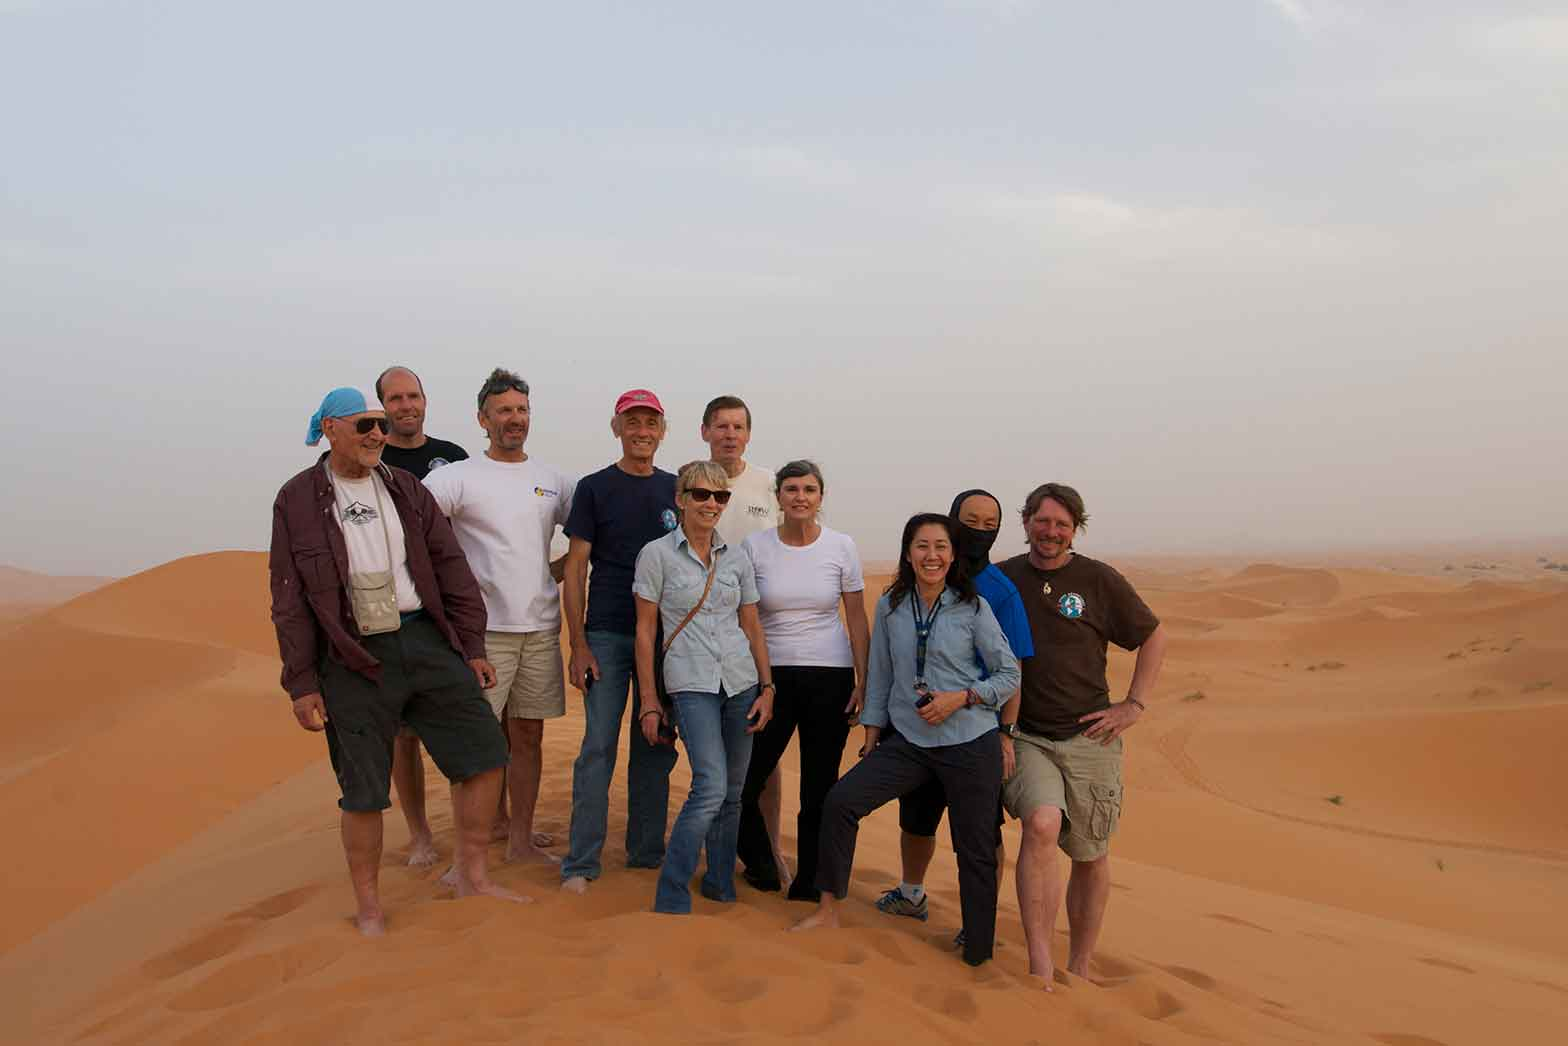 Group in the desert